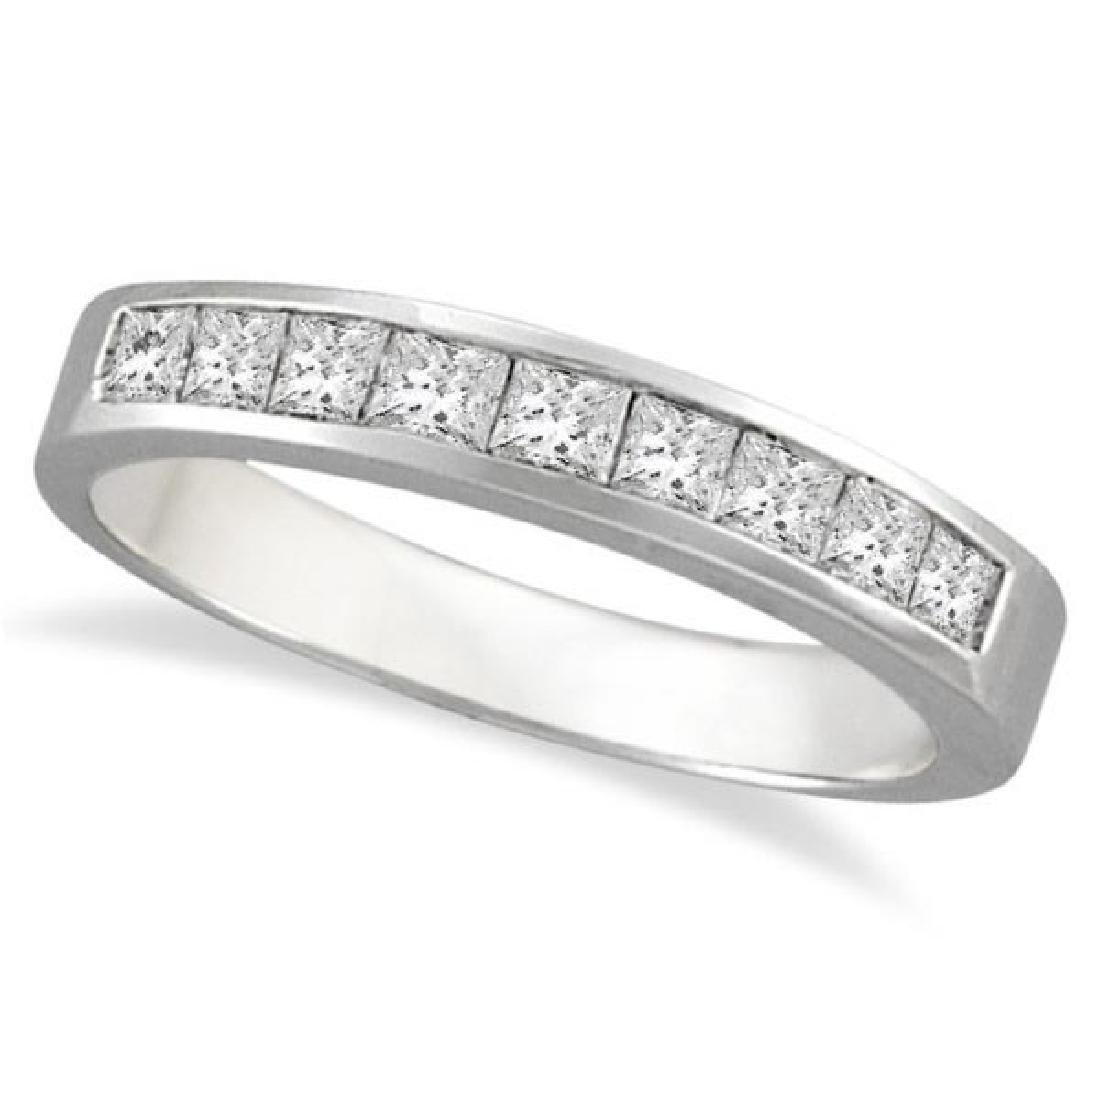 Princess-Cut Channel-Set Diamond Ring in 14k White Gold